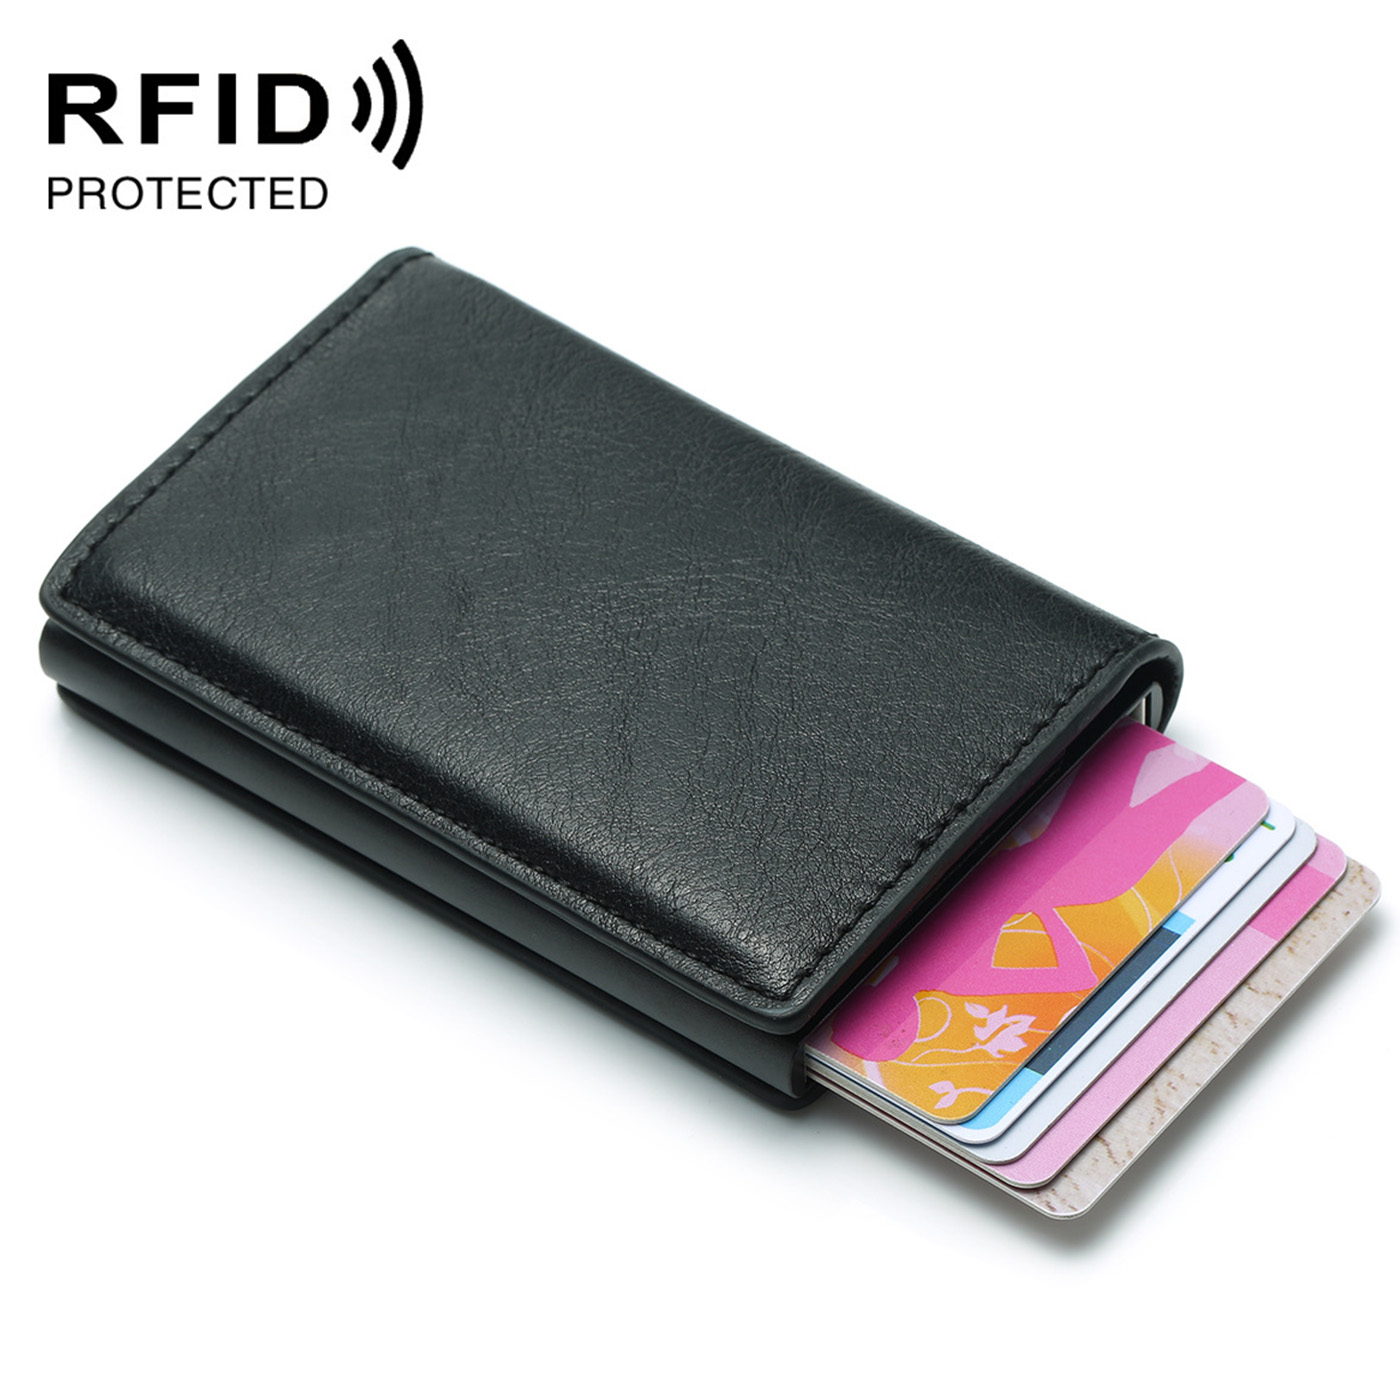 2019 Fashion Men's Credit Card Holder Anti RFID Blocking Leather Small Wallet ID Card Case Metal Protection Purse For Women